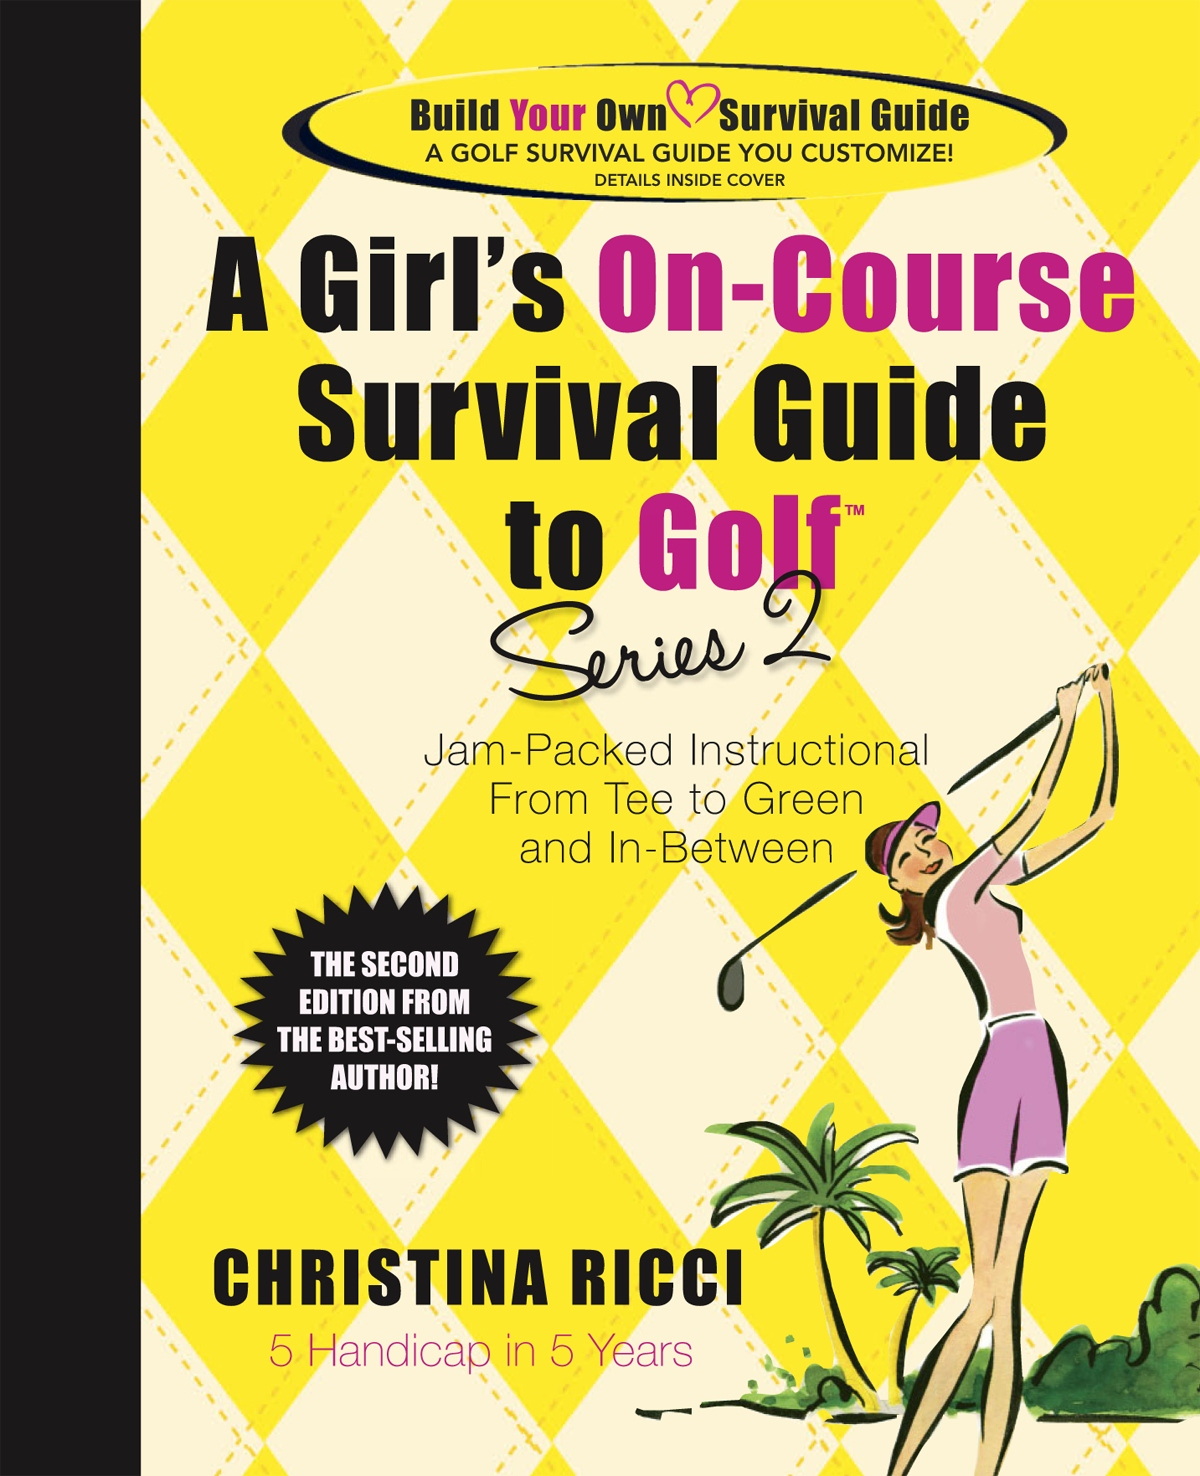 Improve your game with Series 2! The author that brought you the best selling title A Girl's On-Course Survival Guide To Golf, now continues her series by bringing you a new book jam-packed with great pictures and clear-cut instruction. Christina notes th